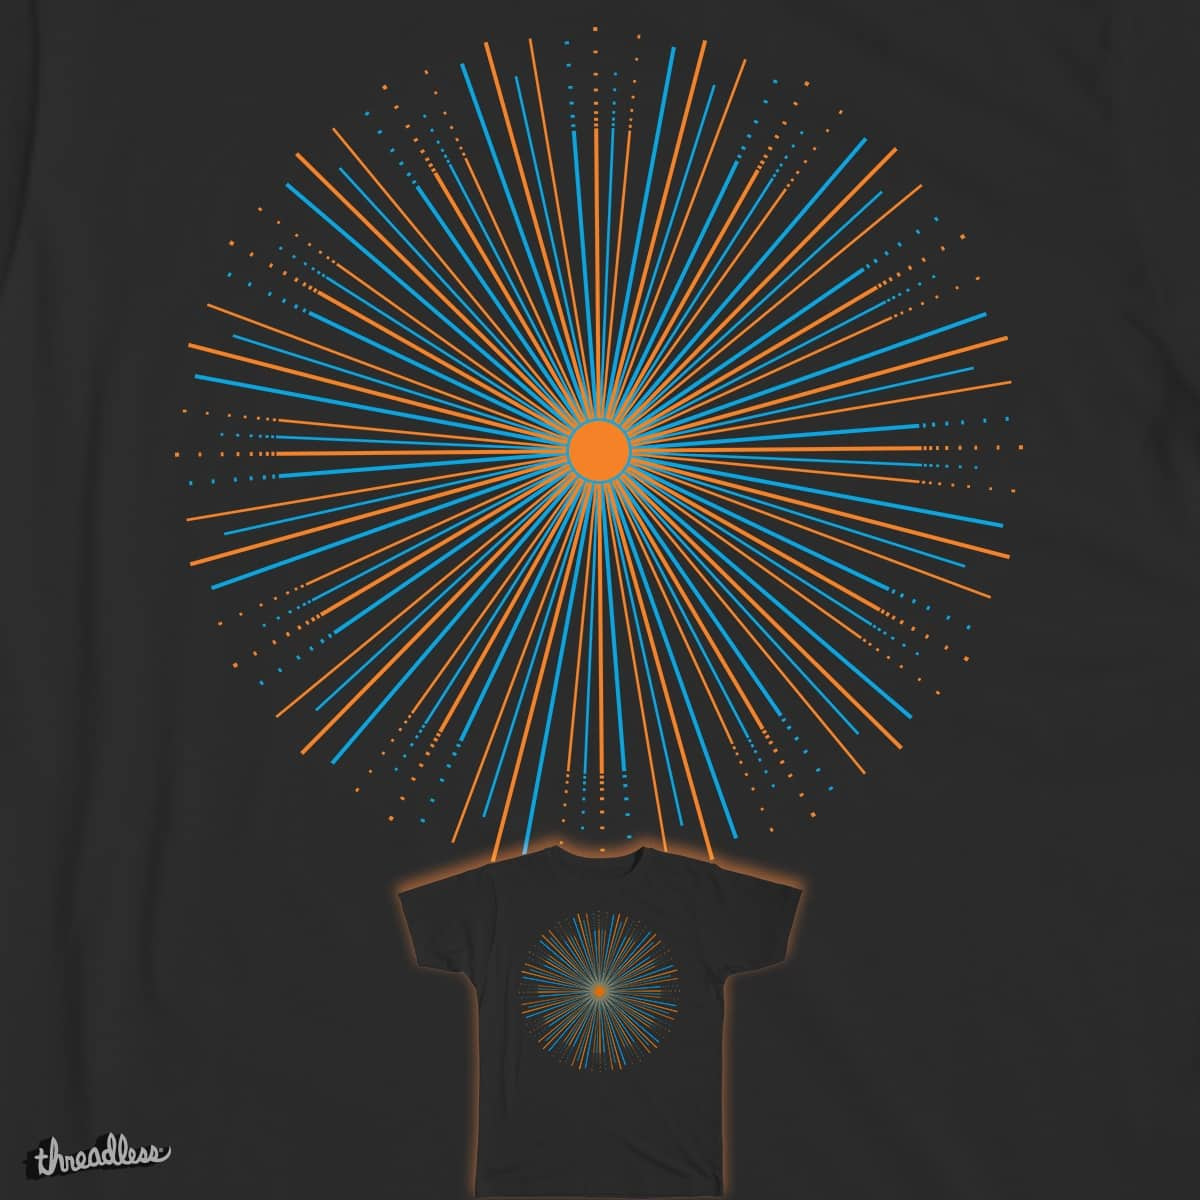 Sunburst by dmtab on Threadless